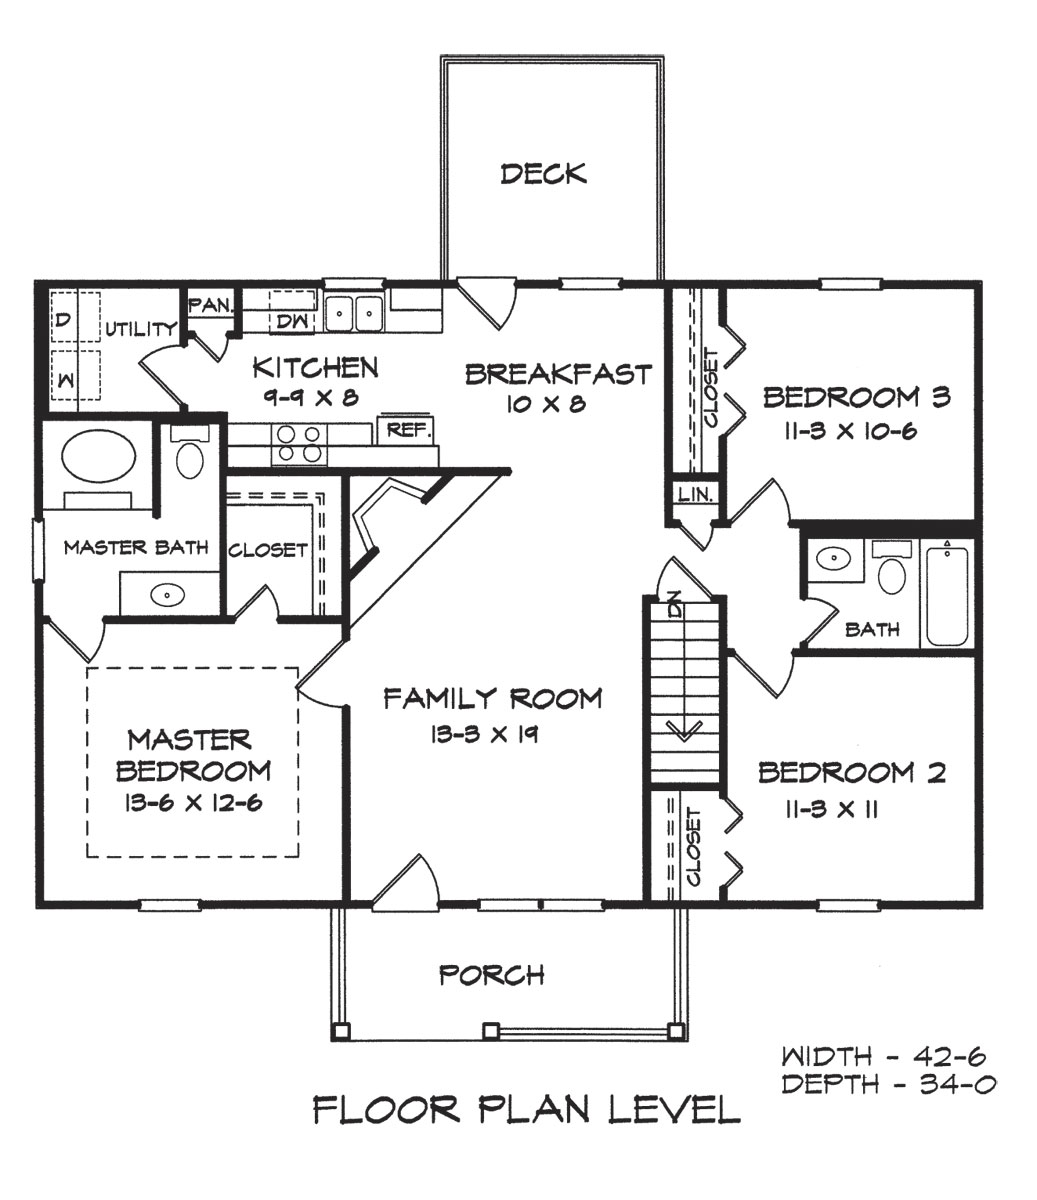 architectural drawings floor plans. Fine Plans Home Builder Construction Floor Plans Architectural Drawings Blueprints By  Licensed Building Designers For Contractors  To Plans